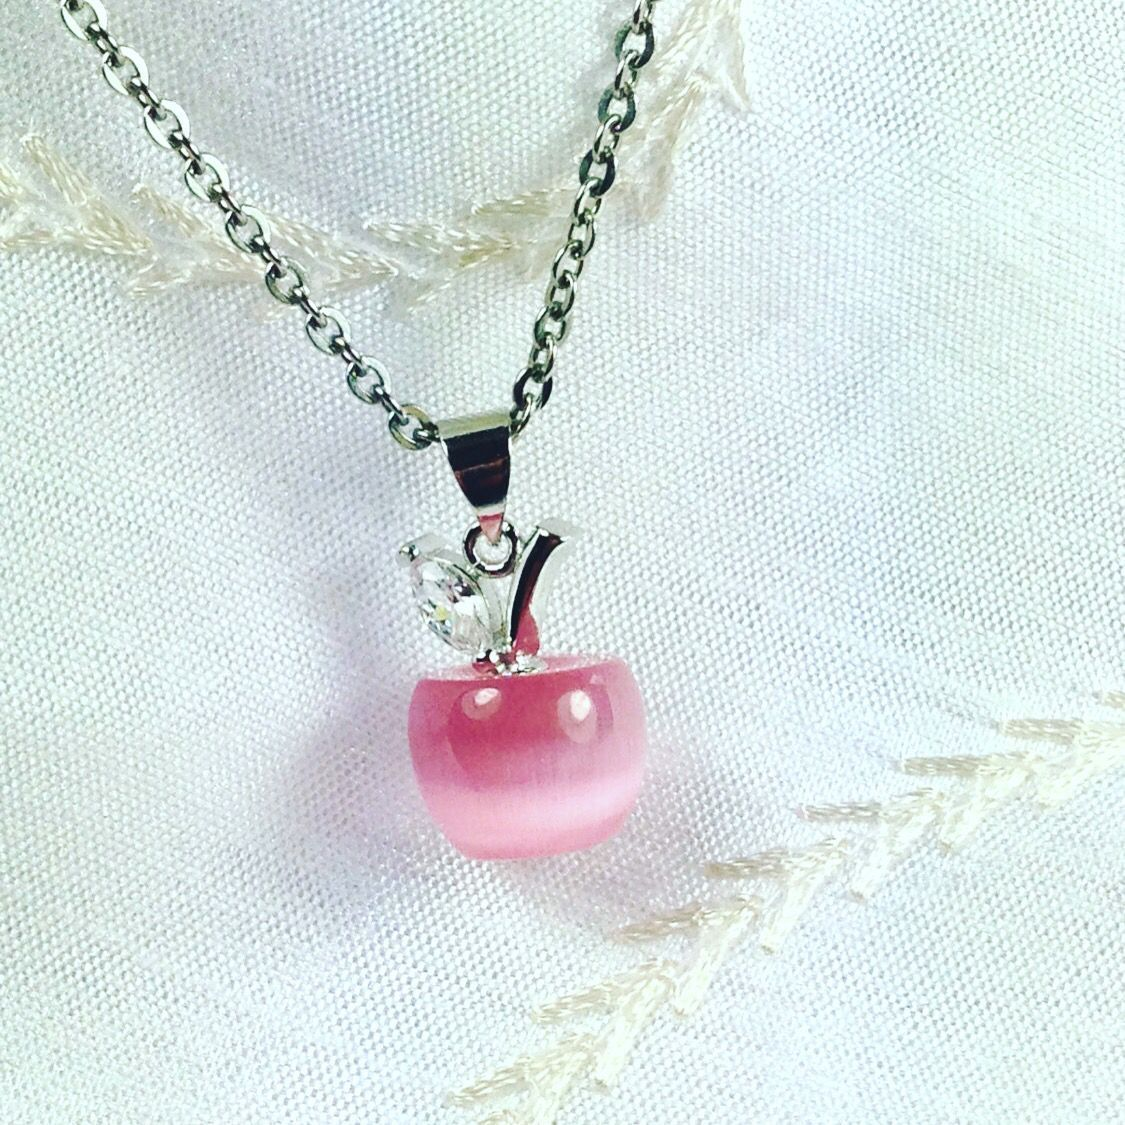 Cat&#39;s Eye #Apple #Necklace w/ #Crystal Leaf #Handmade #NorthCoastCottage #Jewelry  https:// buff.ly/2ER4ORv  &nbsp;   #pink #MothersDay #shopping #gift<br>http://pic.twitter.com/GdXybRrvMg